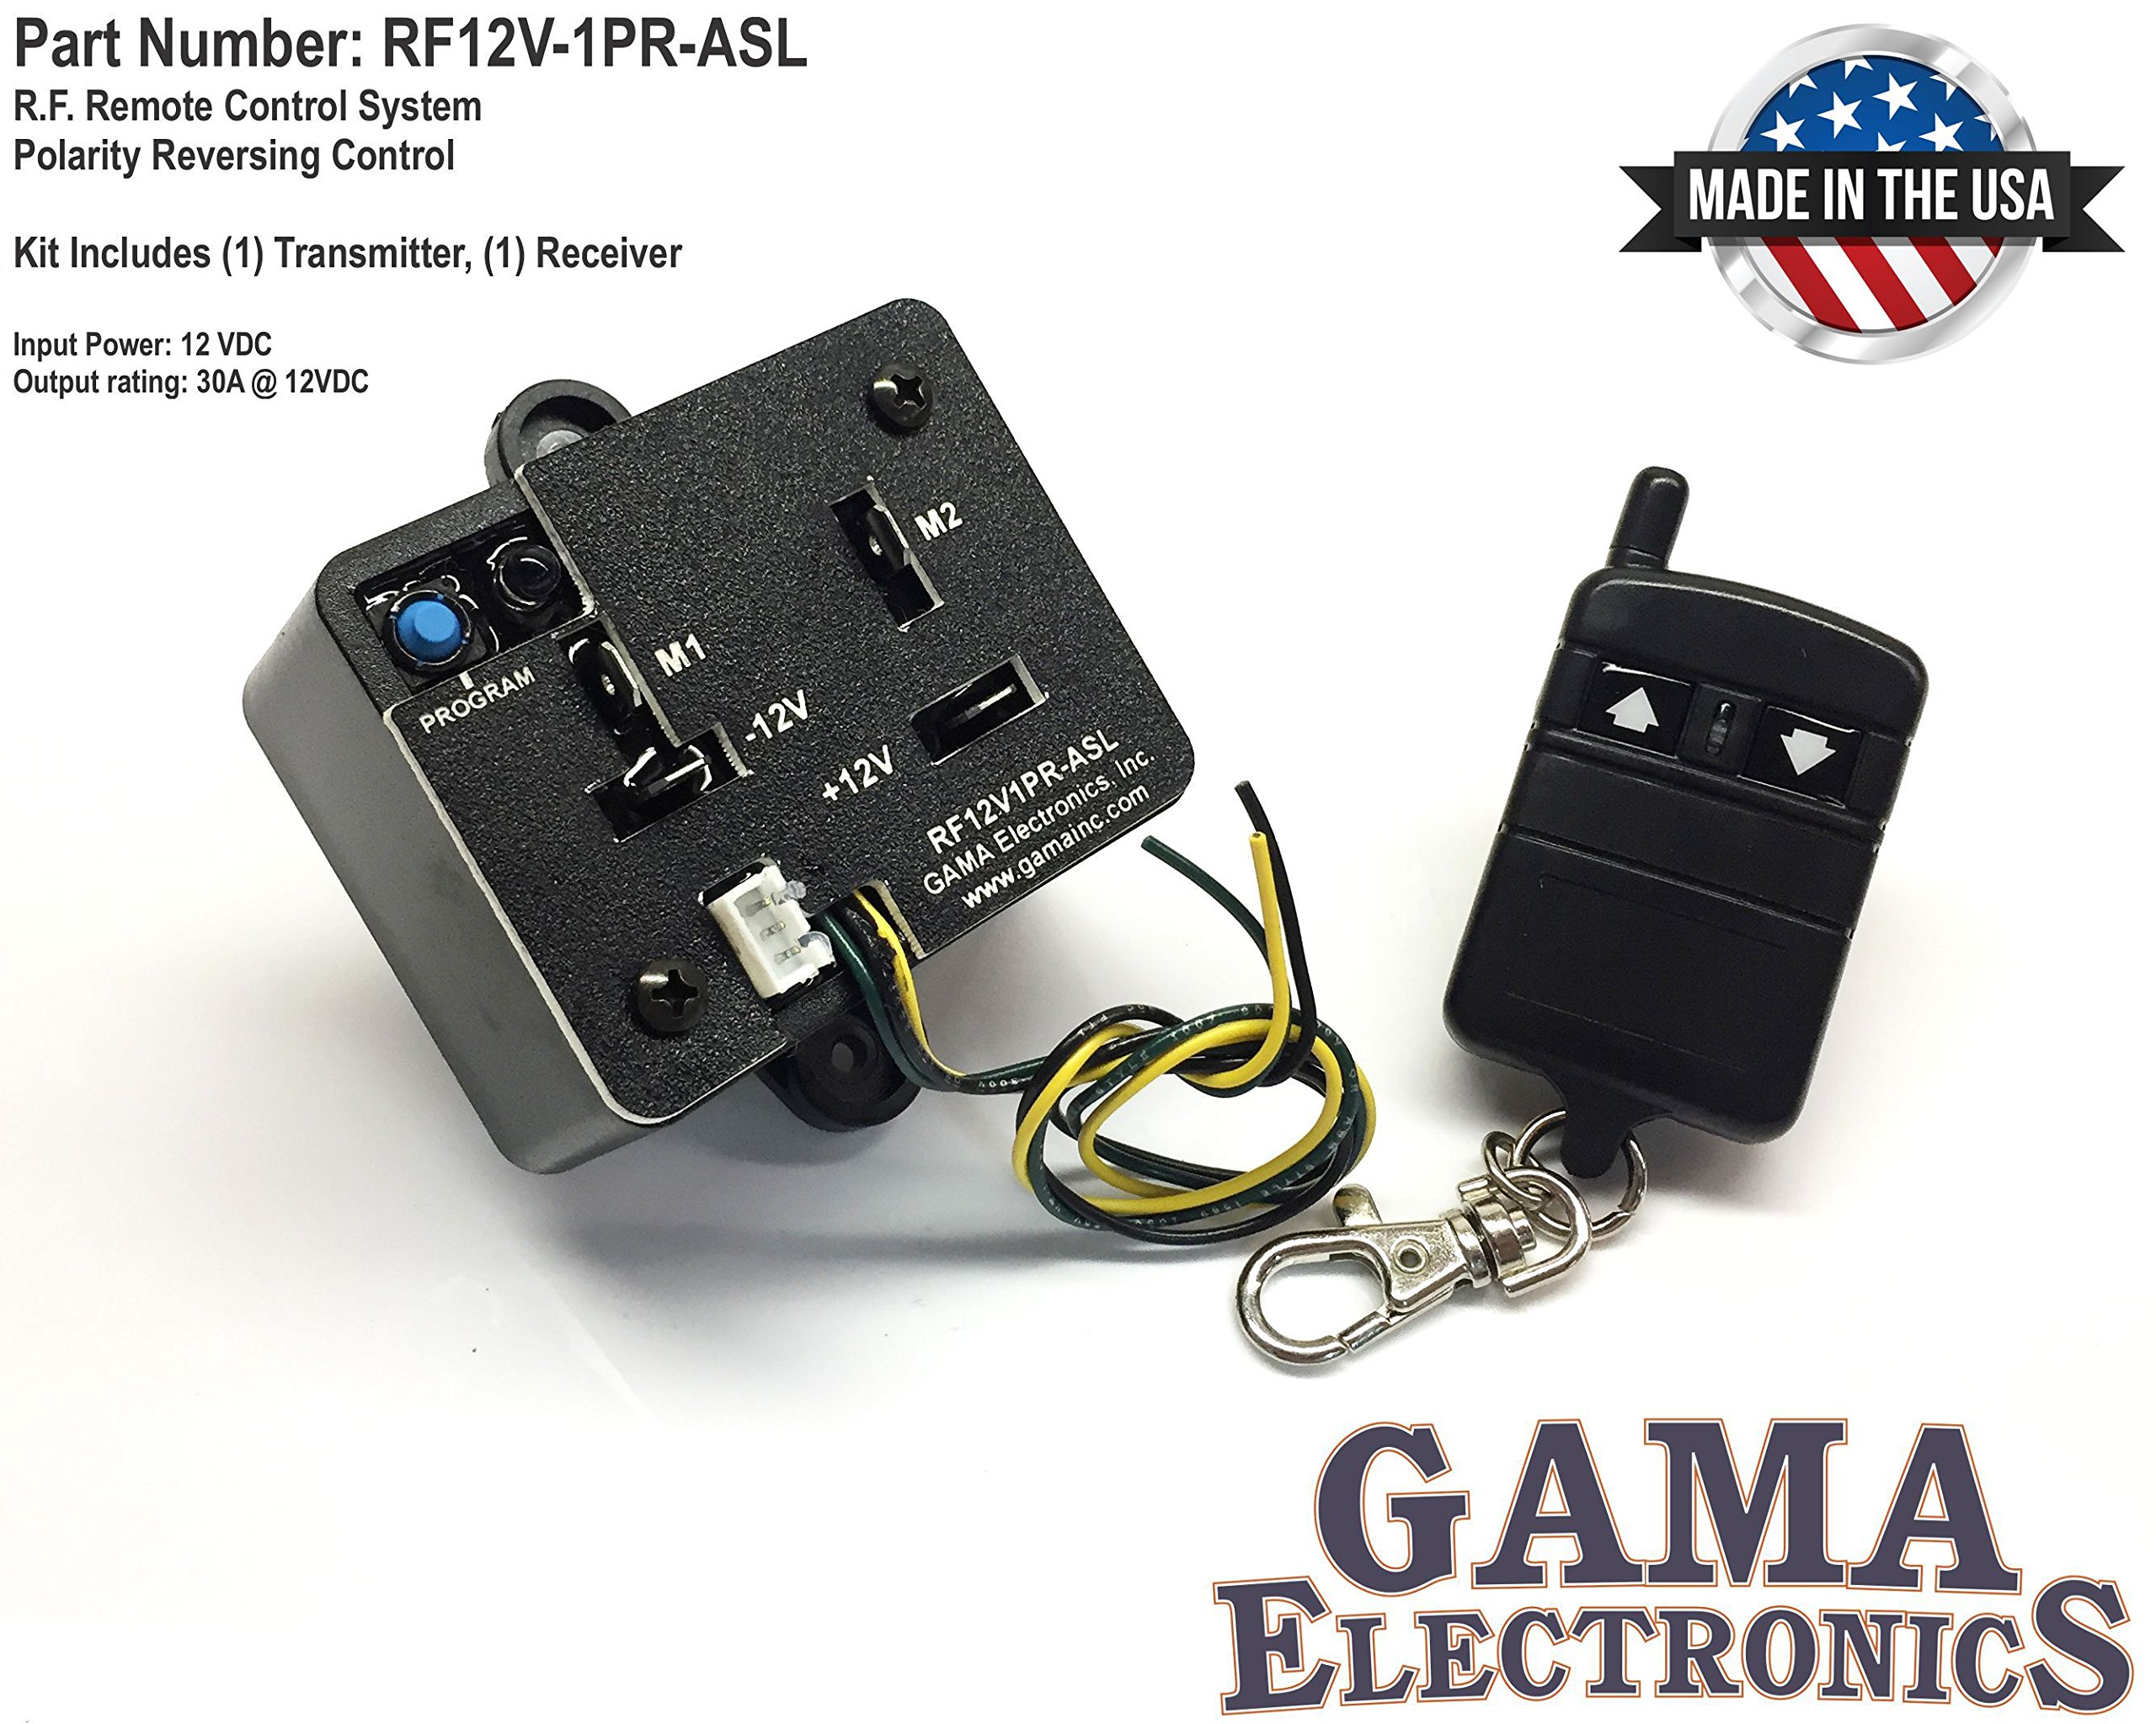 GAMA Electronics RF Remote Control Reverse Polarity 12VDC Motor Control with Auxiliary Switch Input by GAMA Electronics